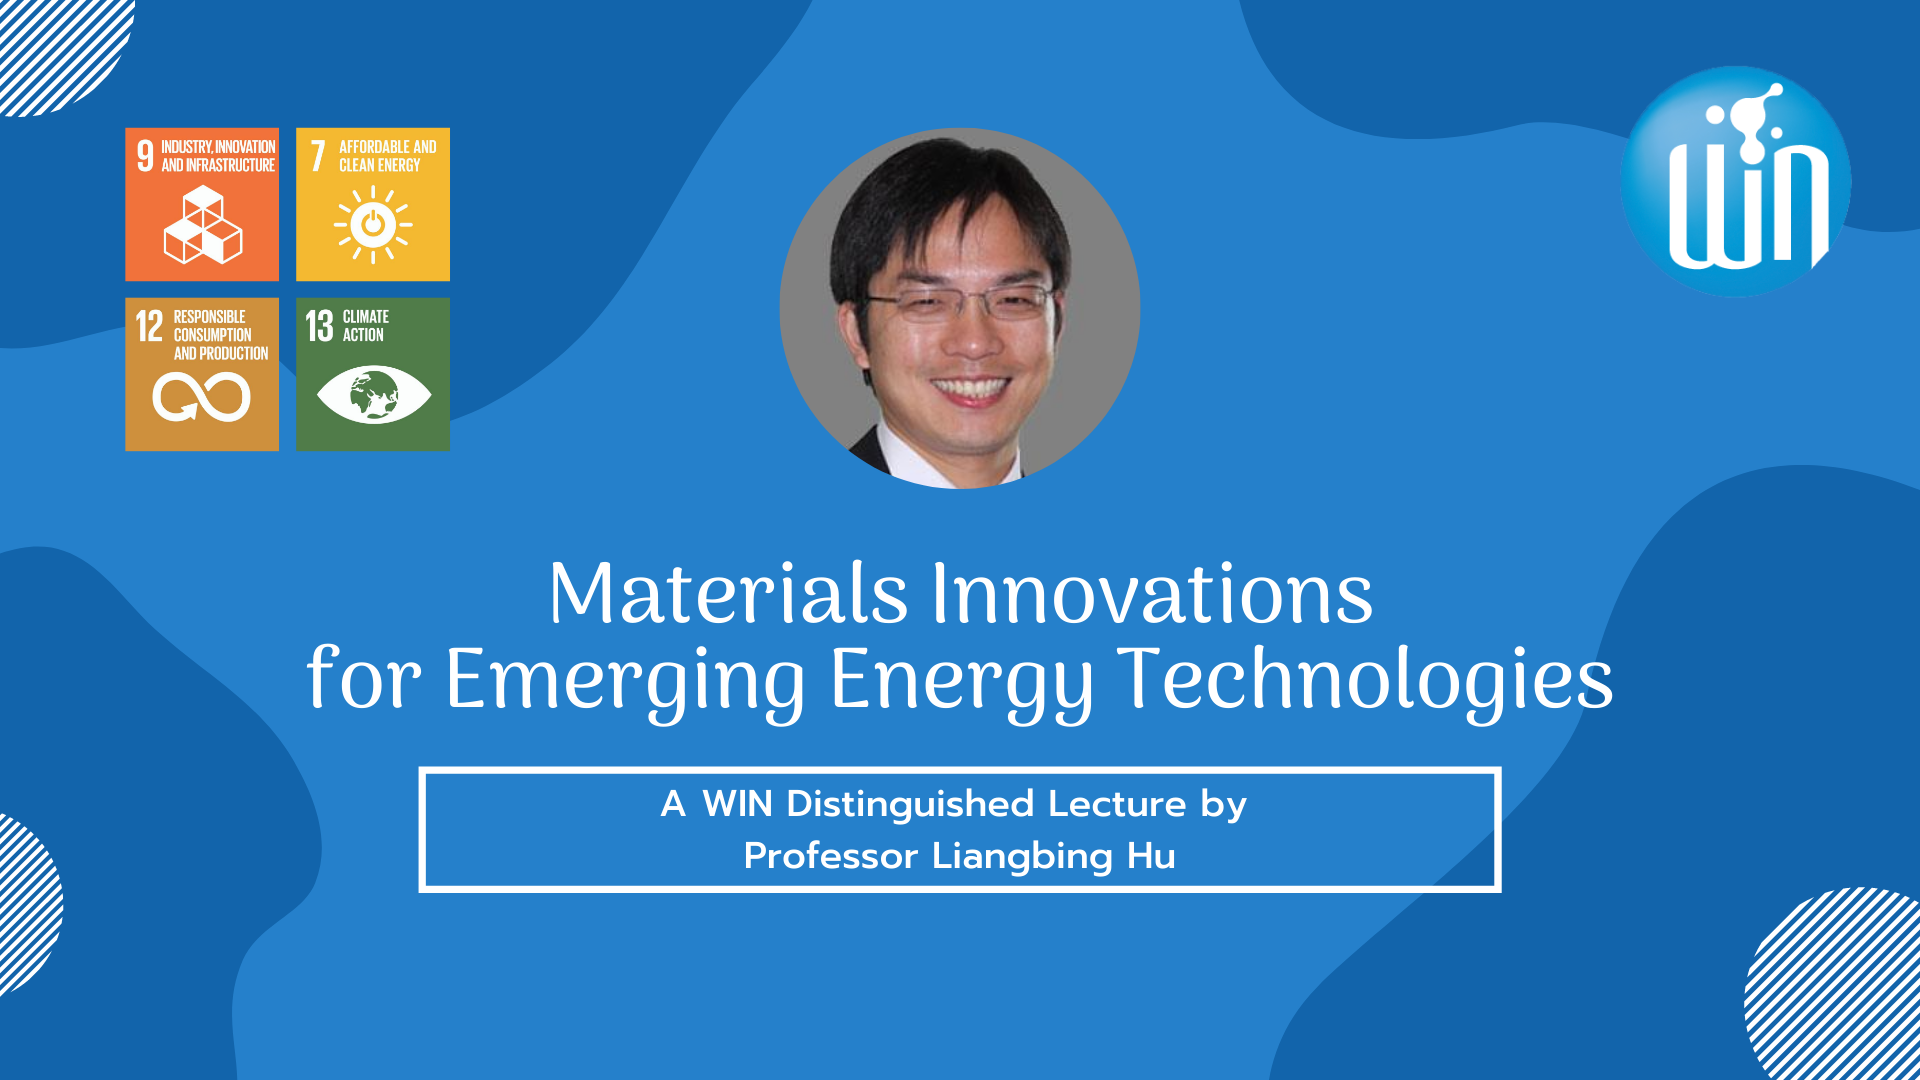 Event poster for WIN distinguished lecture series